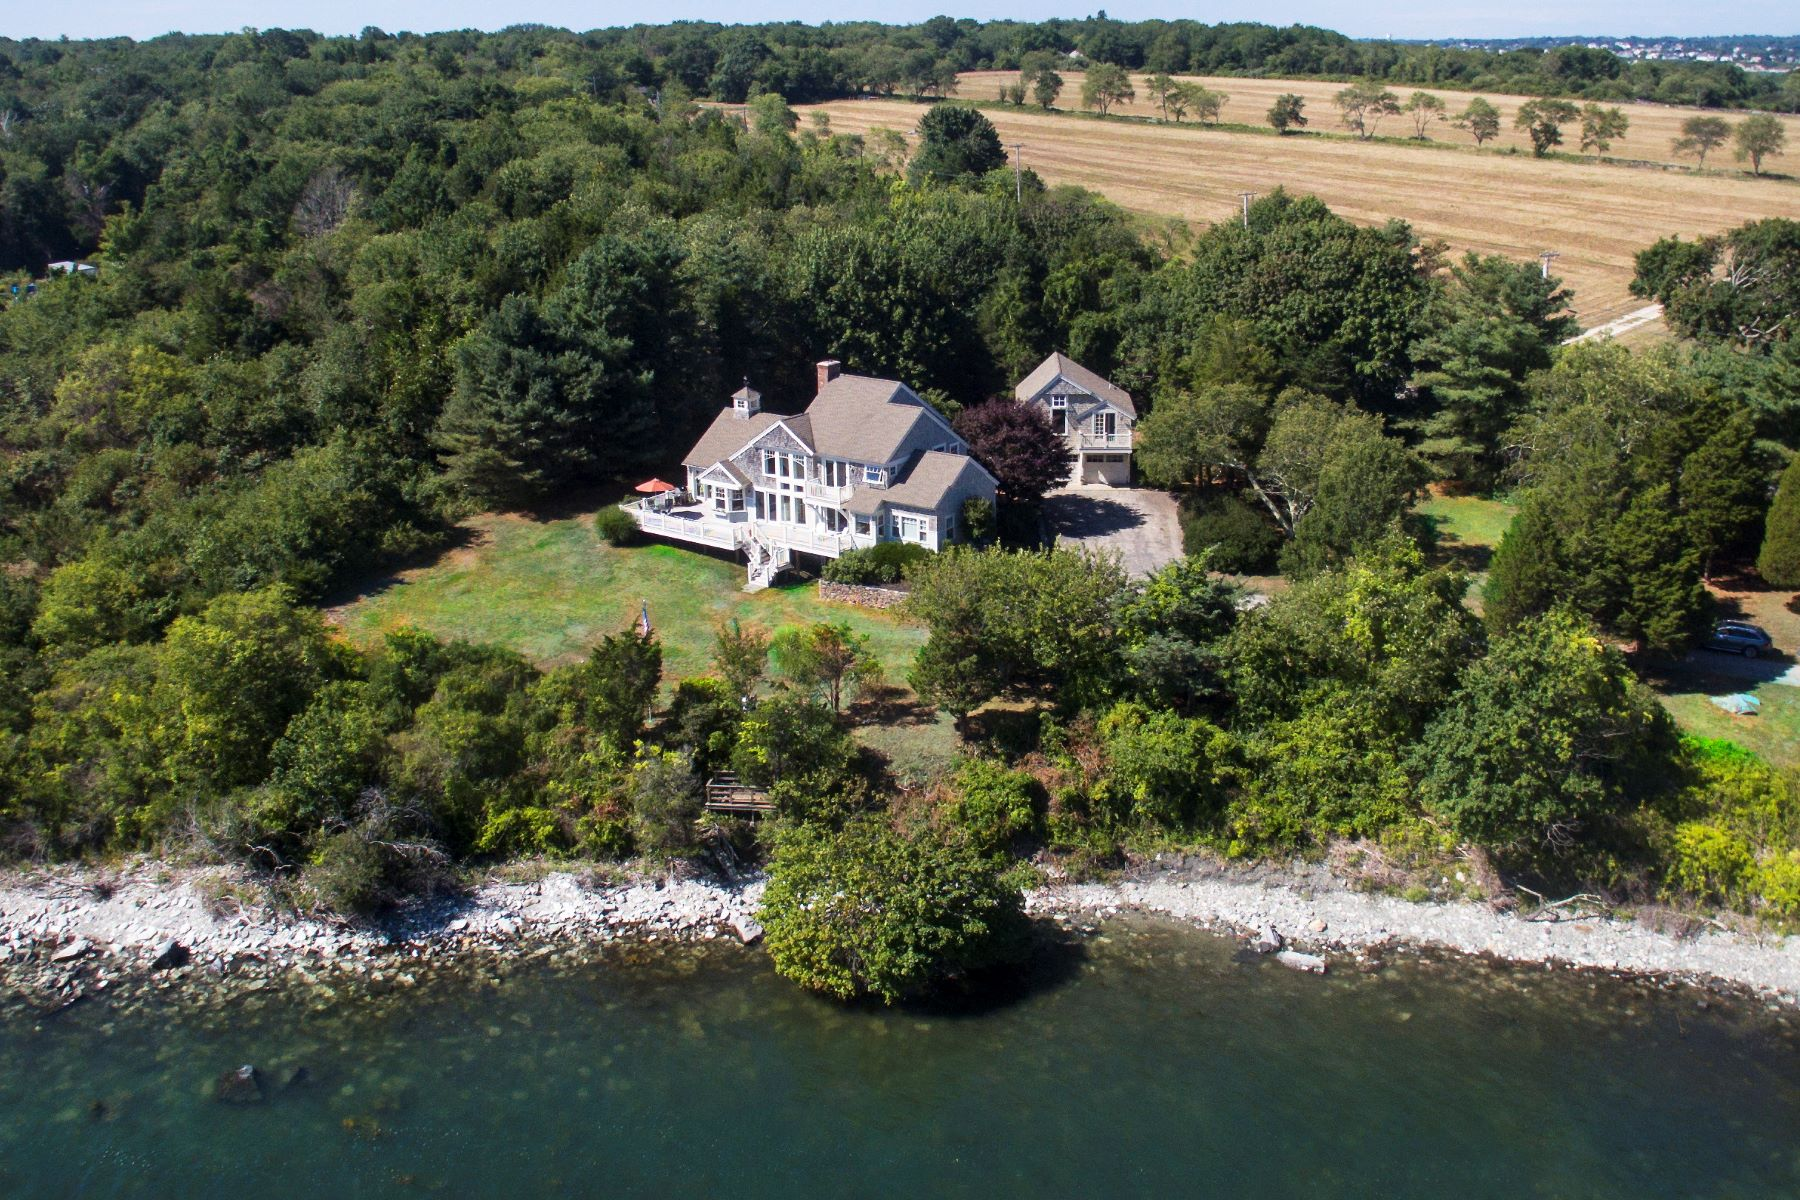 Single Family Home for Sale at Beavertail Point 115 Beavertail Road Jamestown, Rhode Island 02835 United States